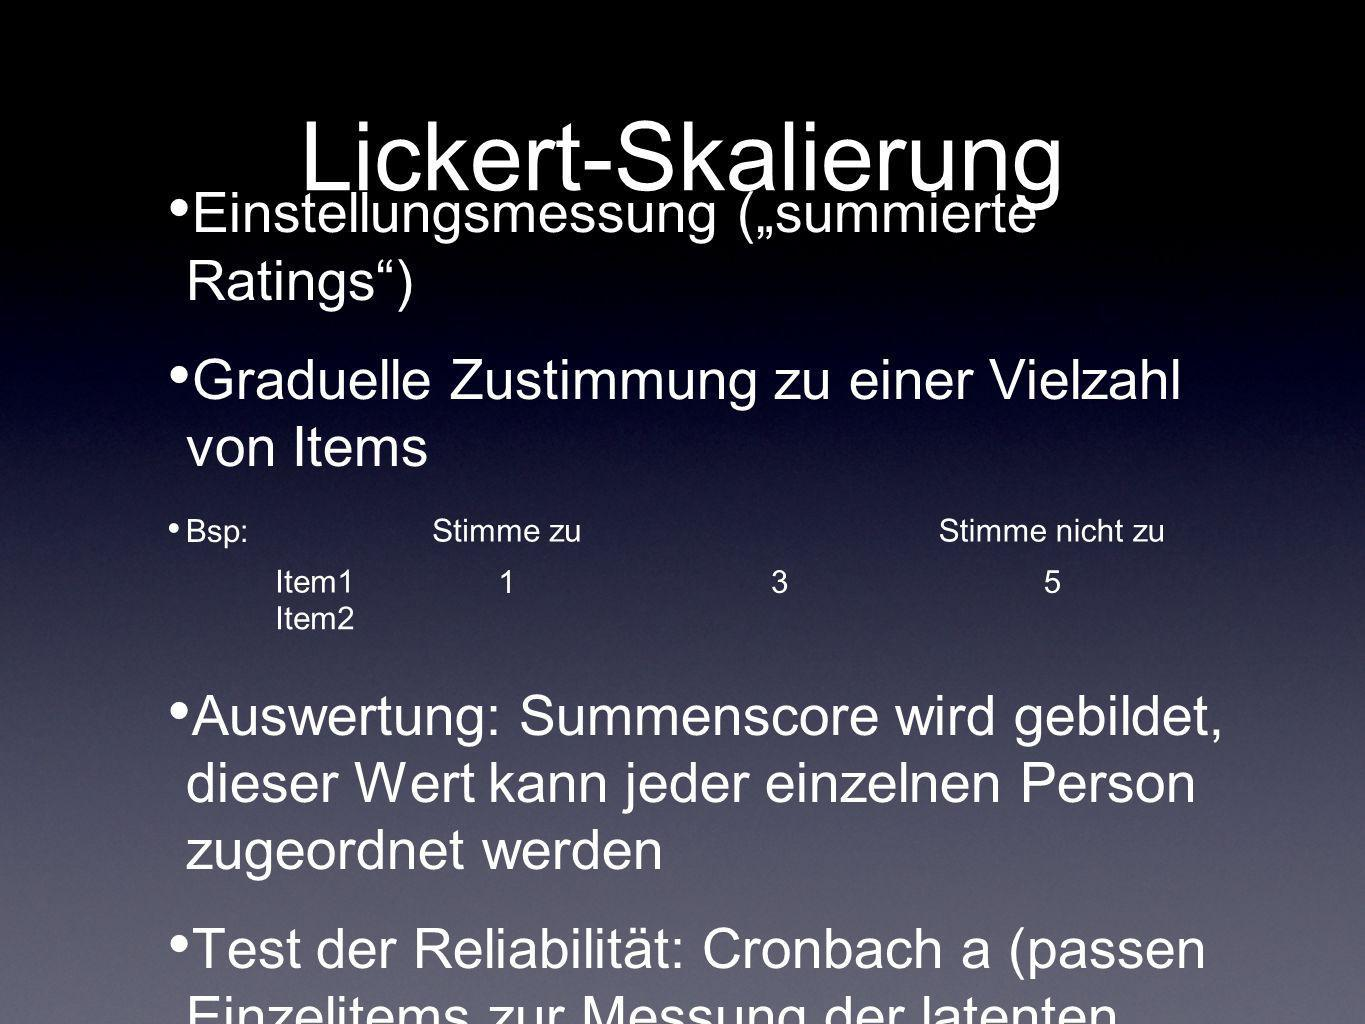 "Lickert-Skalierung Einstellungsmessung (""summierte Ratings )"